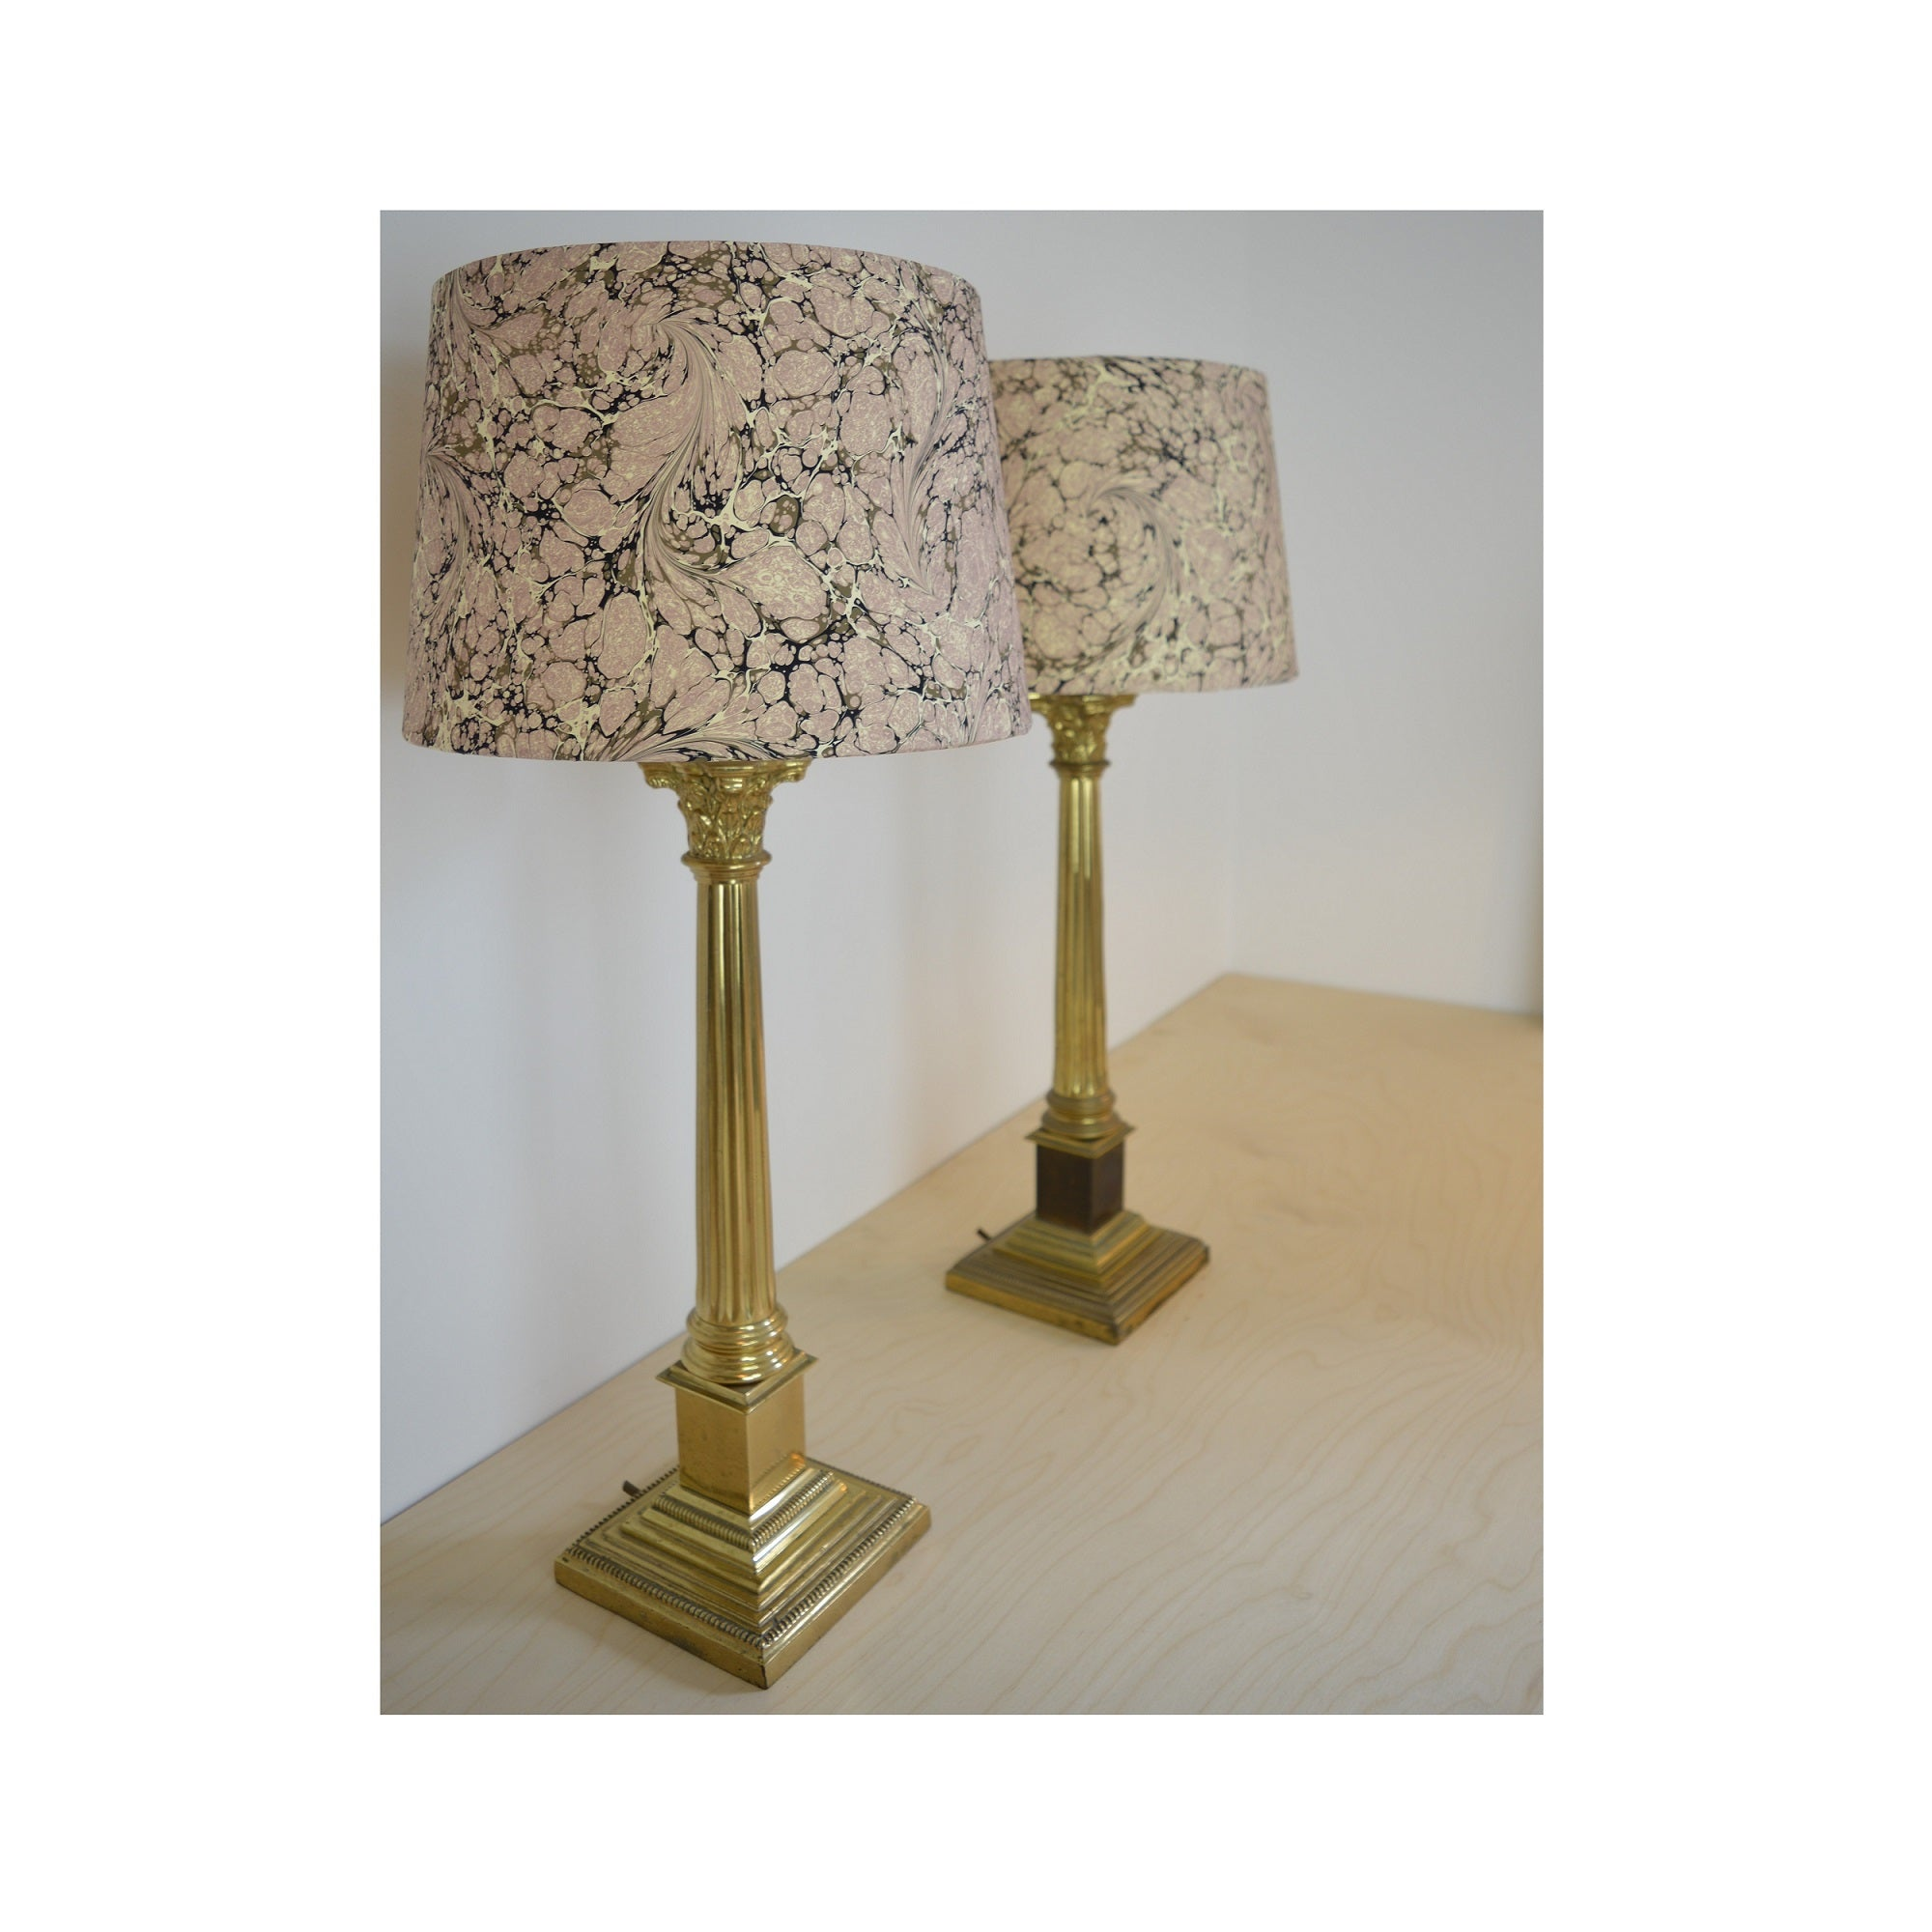 Munro and Kerr pretty pink and stone marbled paper tapered drum lampshade